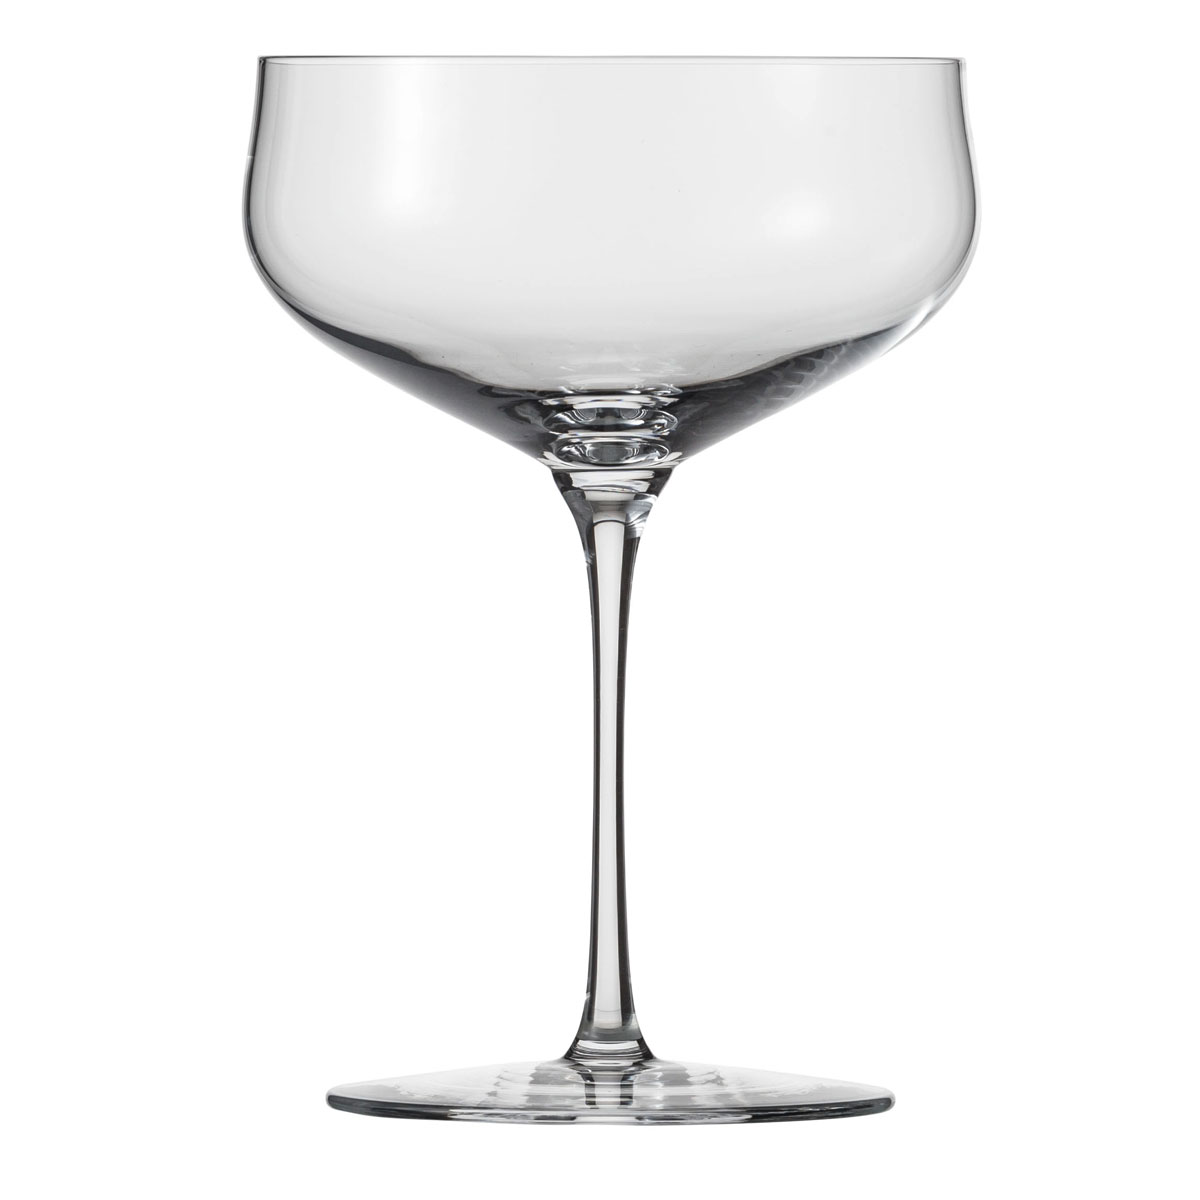 Schott Zwiesel Tritan Crystal, Air Saucer Crystal Champagne Glass, Single